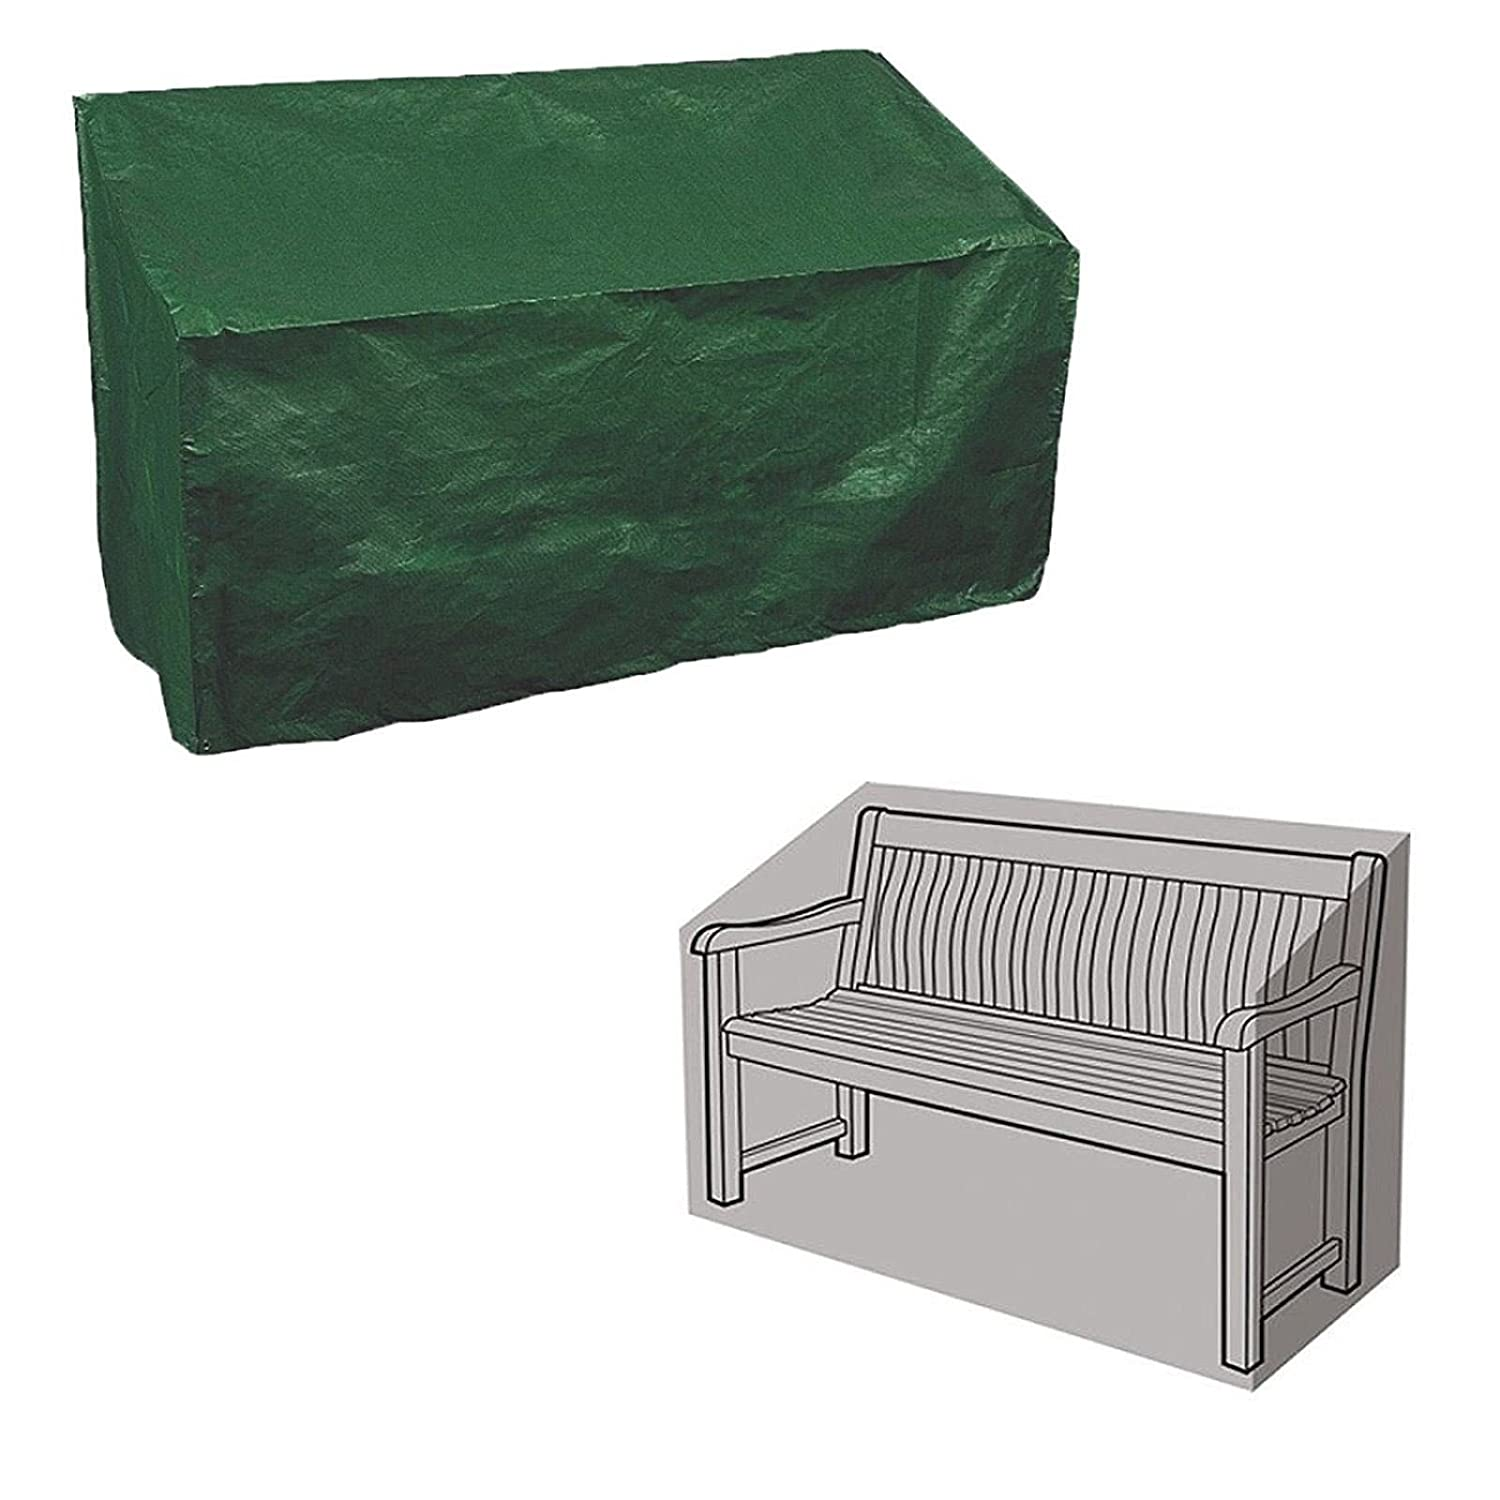 New 2-Seater Bench Cover Waterproof Durable Tear & Rip Resistant Polyethylene Cover discountin ltd